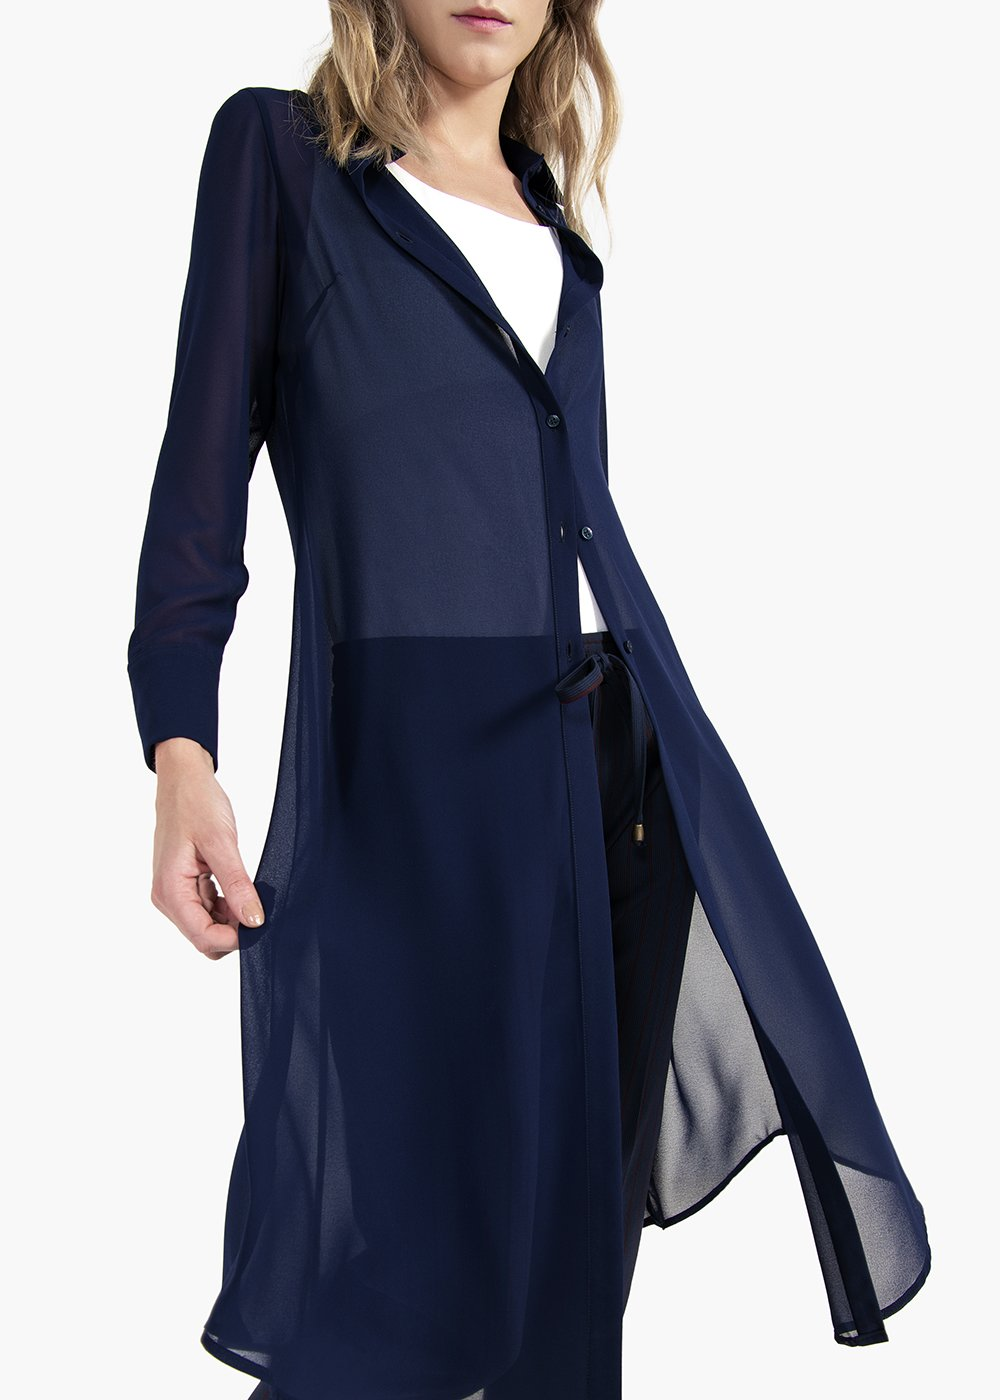 Cristina chemisier in georgette with collar - Blue - Woman